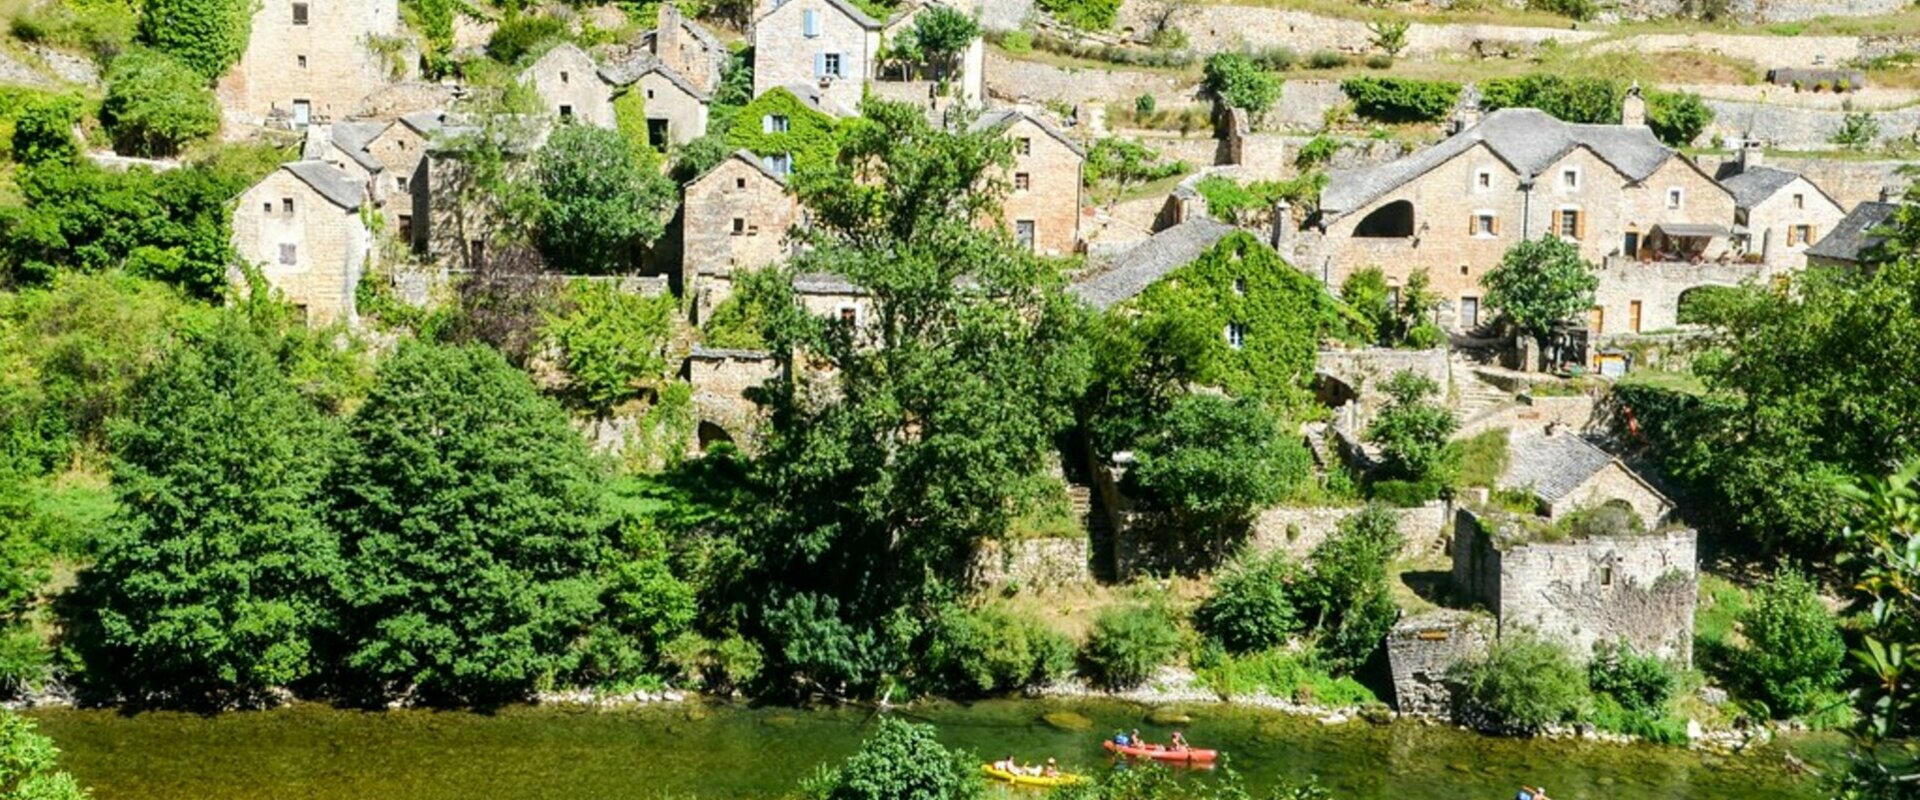 Commune des Gorges du Tarn Causses